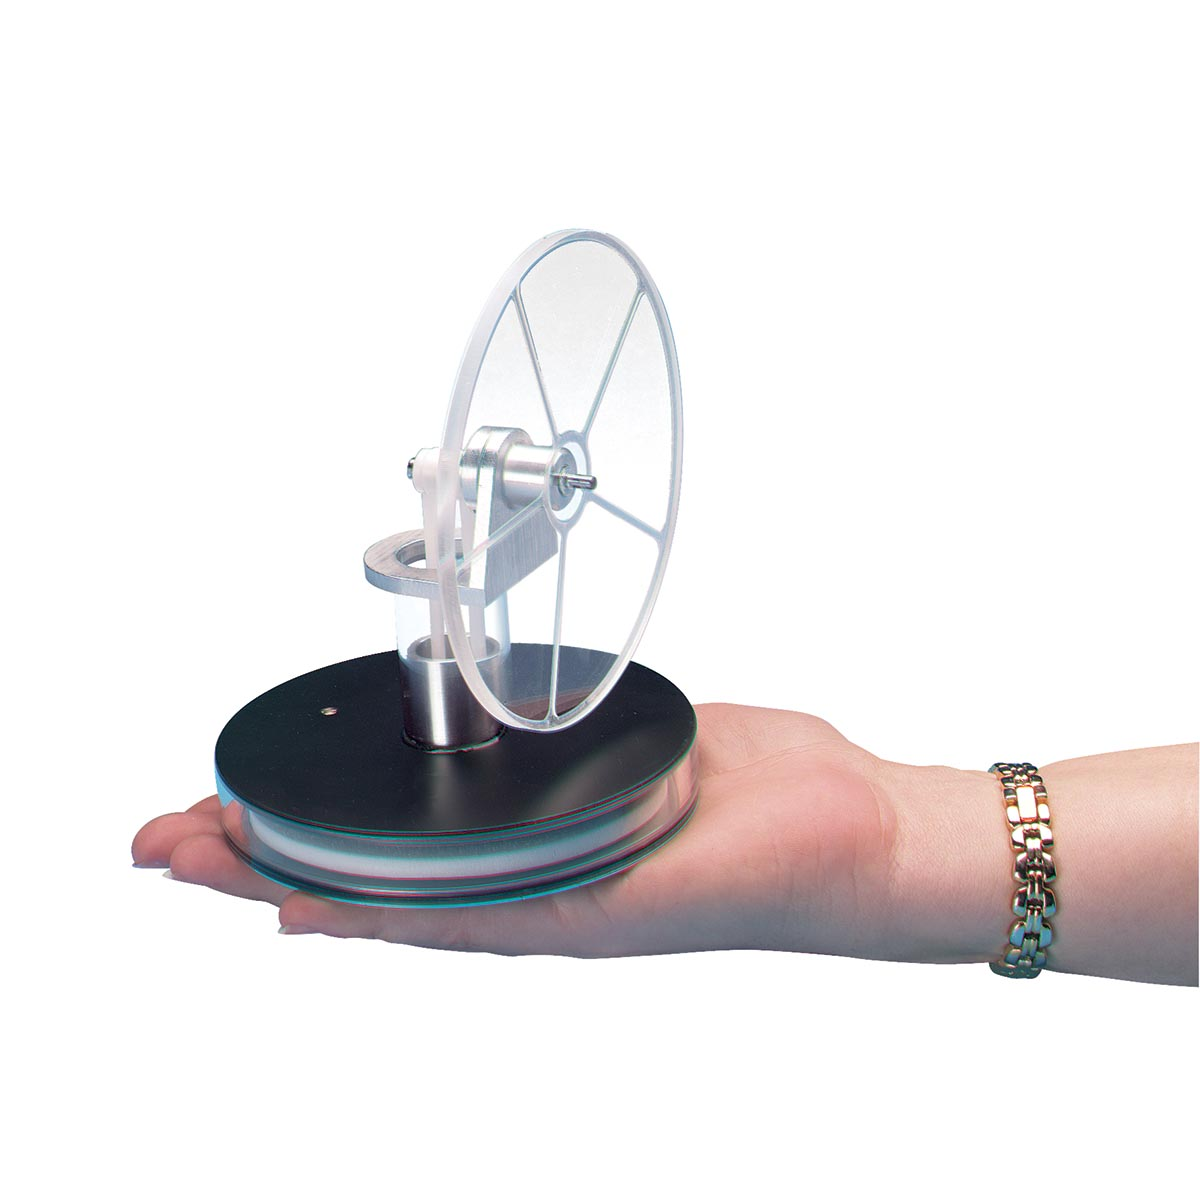 Stirling Engines - Heat and Thermodynamics